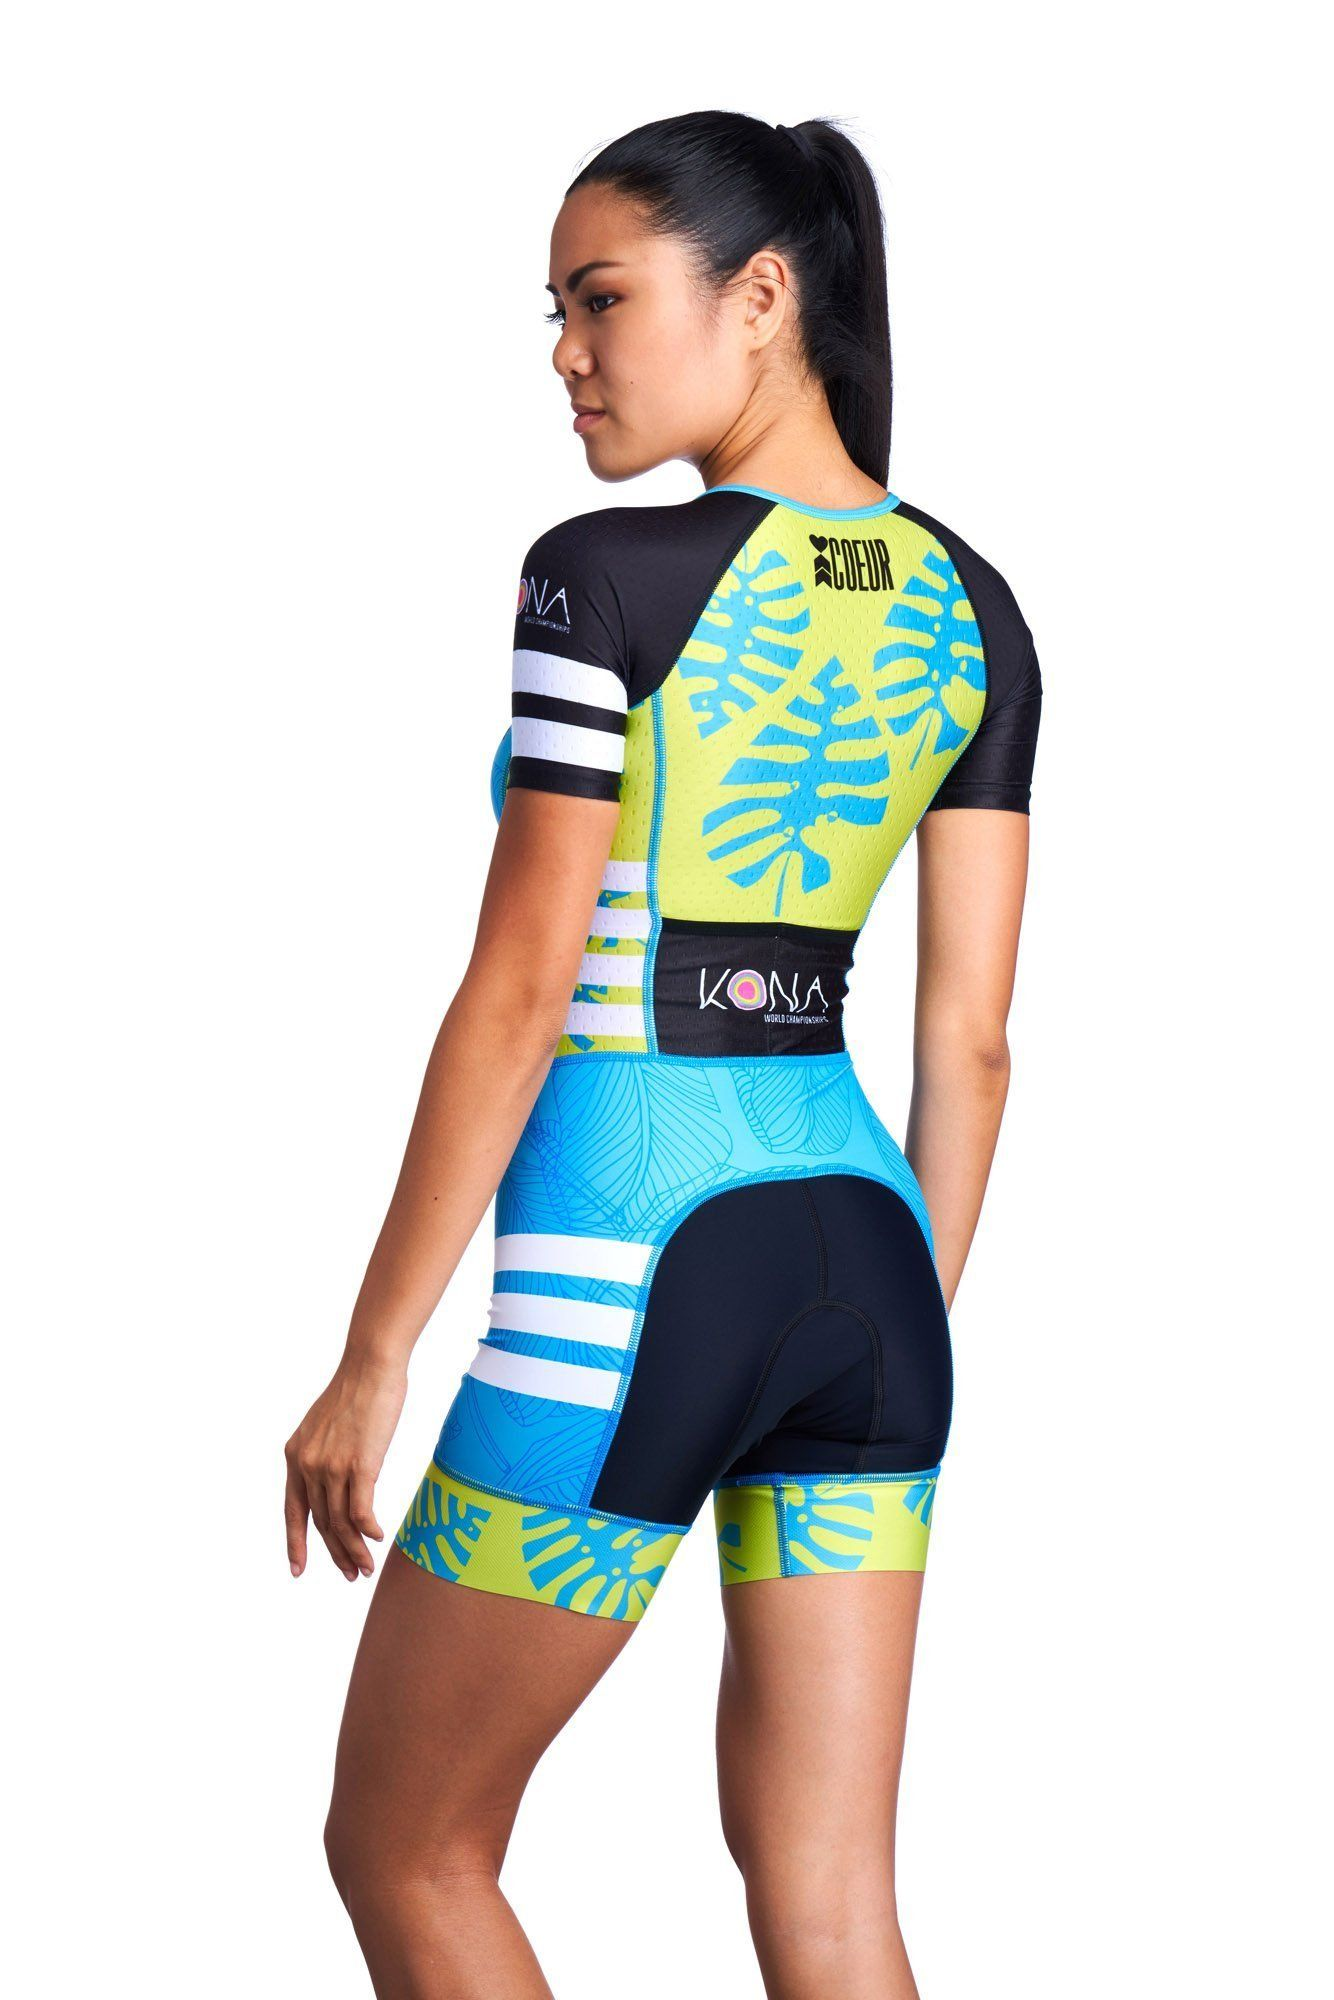 106777ab8da Kona 18 Women s Sleeved One Piece Triathlon Suit